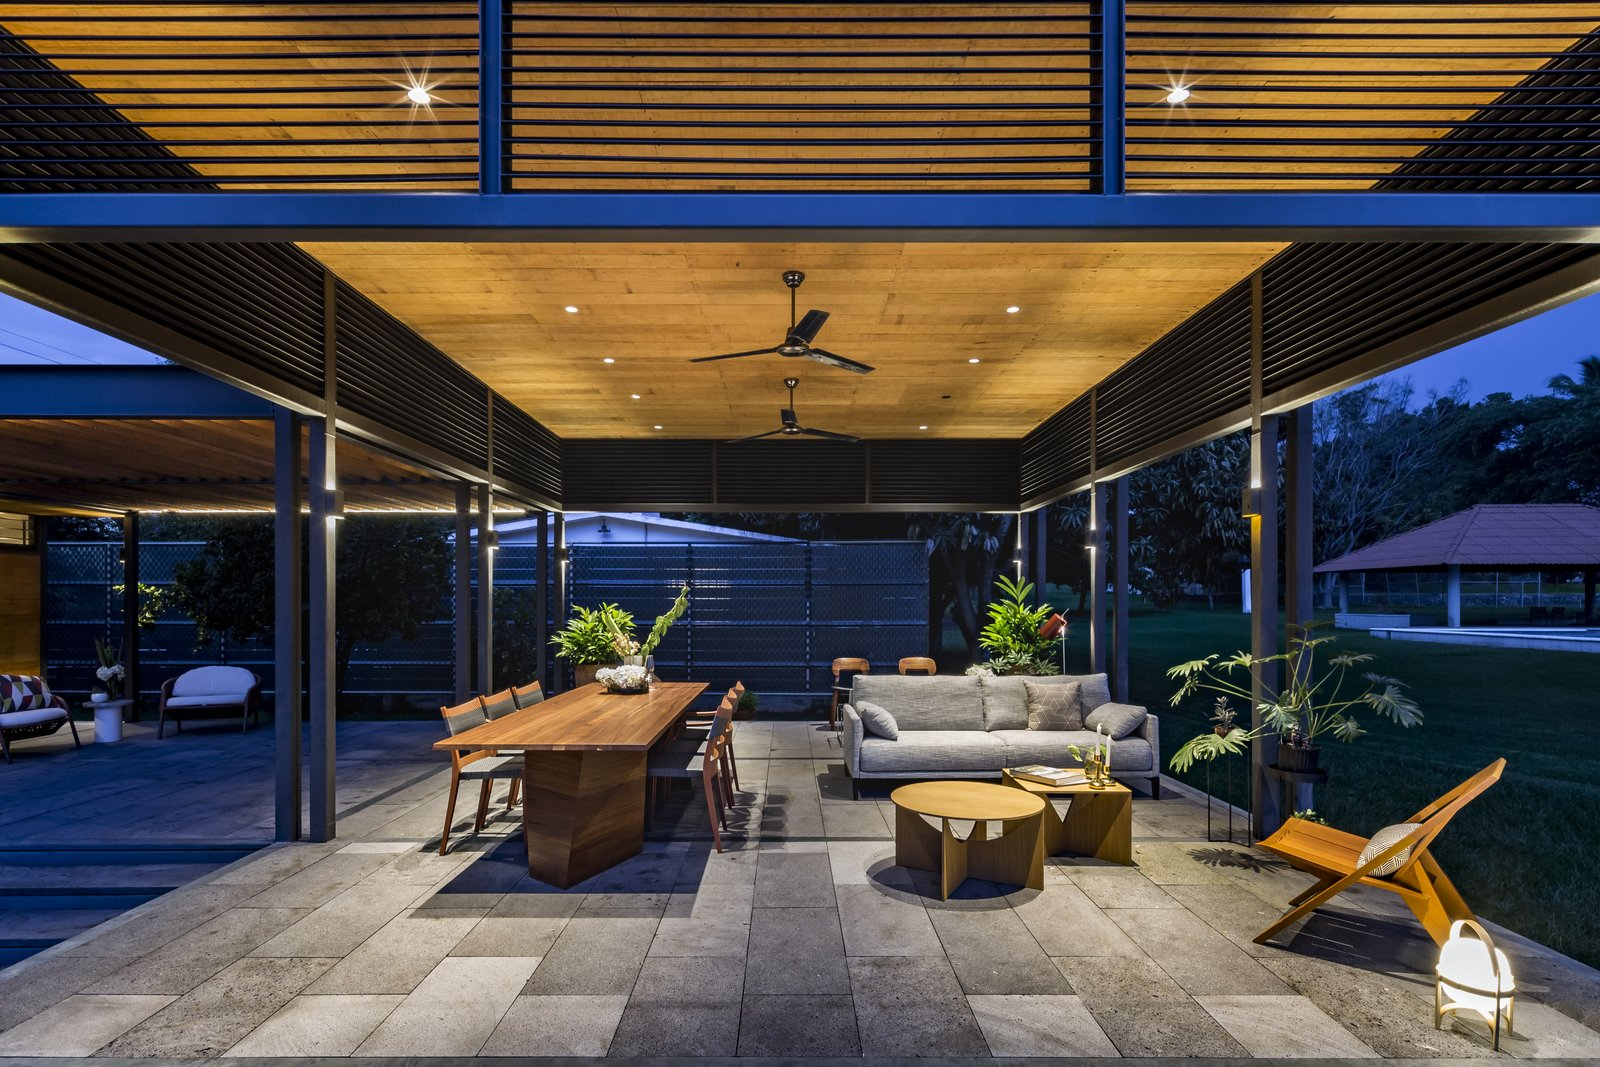 Outdoor, Back Yard, Stone, Large, Grass, and Planters The outdoor benefits from ceiling fans to help circulate the air and keep things cool.  Best Outdoor Back Yard Planters Photos from This Modern Prefab Is Now a Gorgeous Guest House